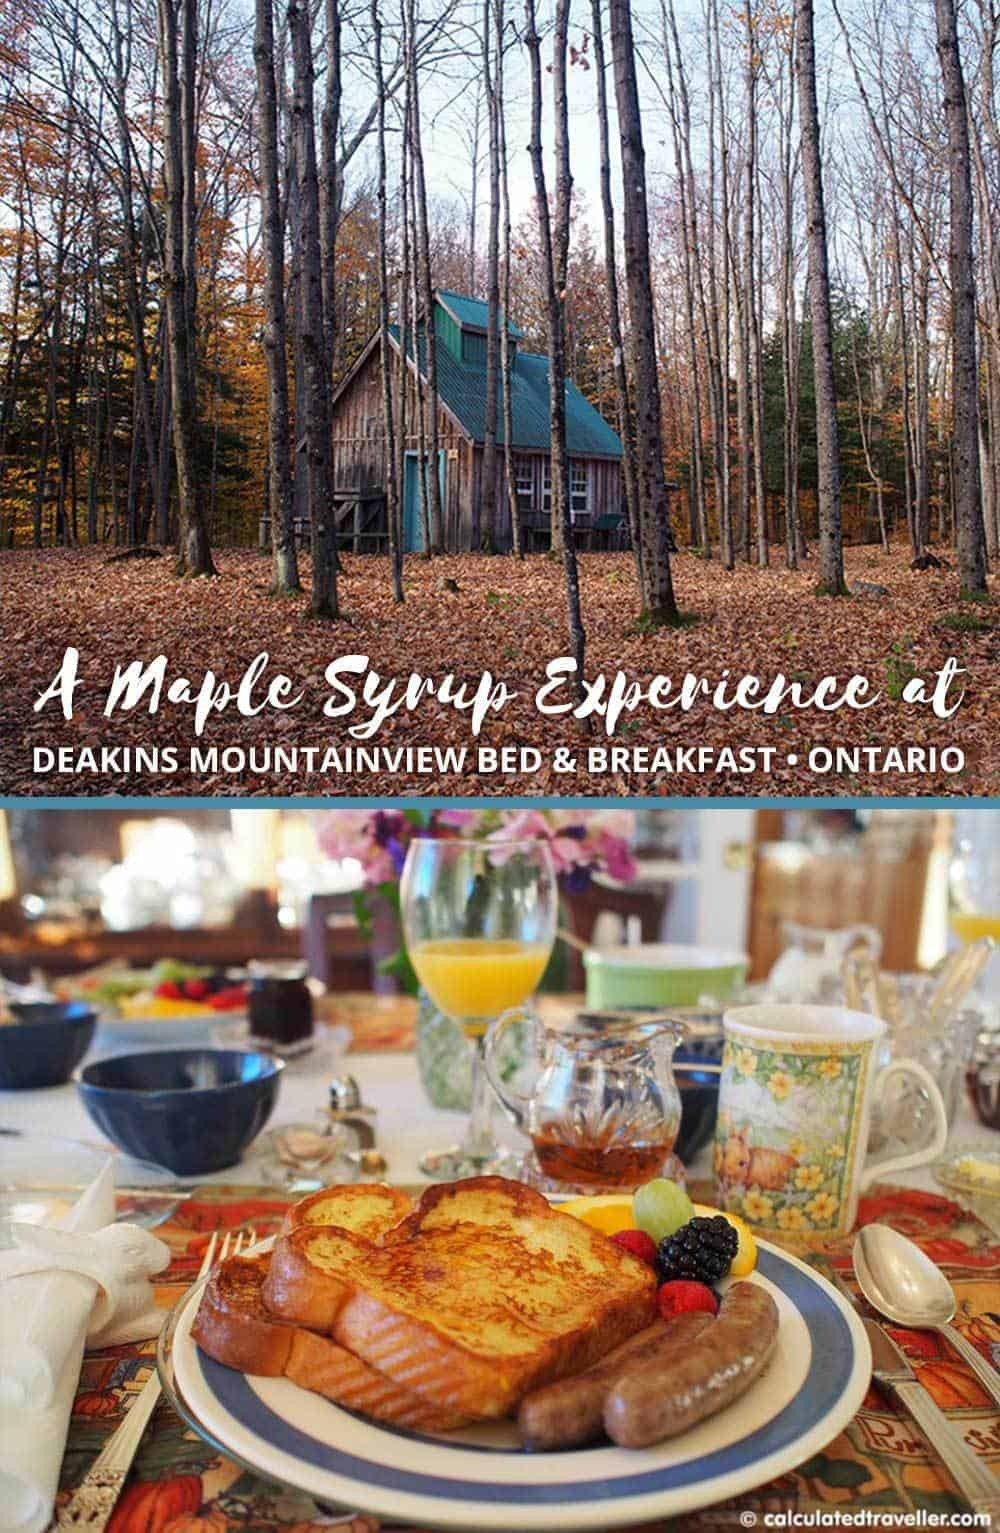 A Maple Syrup Experience at Deakins Mountainview B&B in Ontario's Highlands, Canada by Calculated Traveller